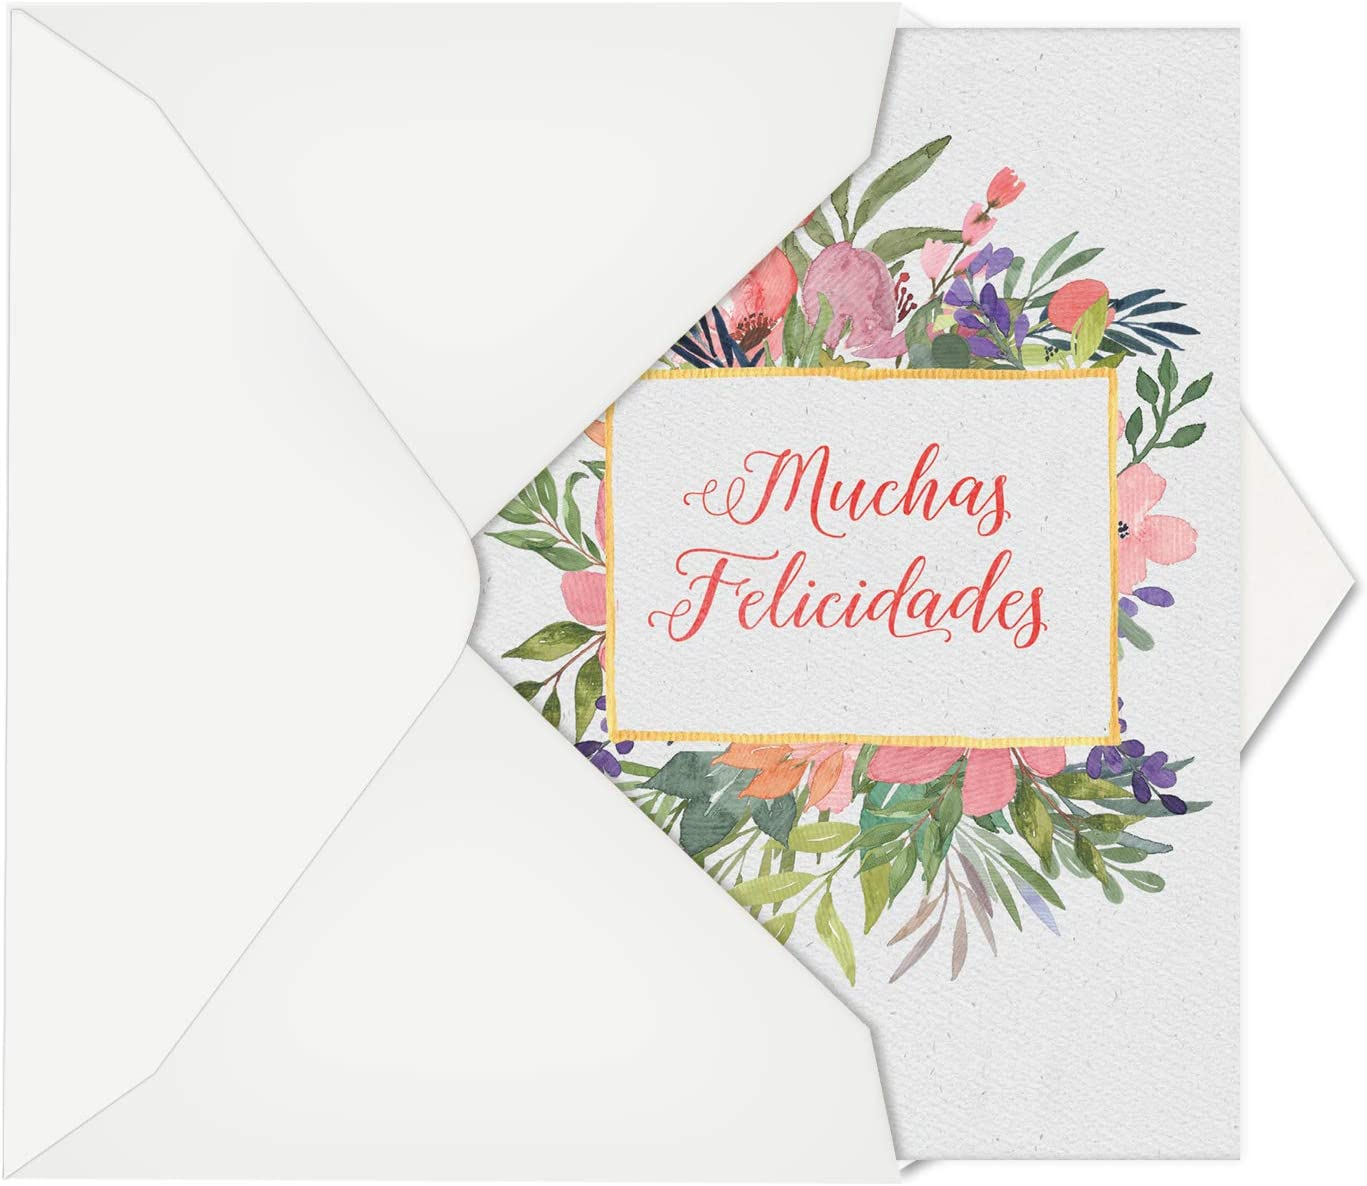 Muchas Felicidades: Hilarious Congratulations Greeting Card With Watercolor Flowers Boxing in Felicitations, with Envelope. C6645CGG-SL